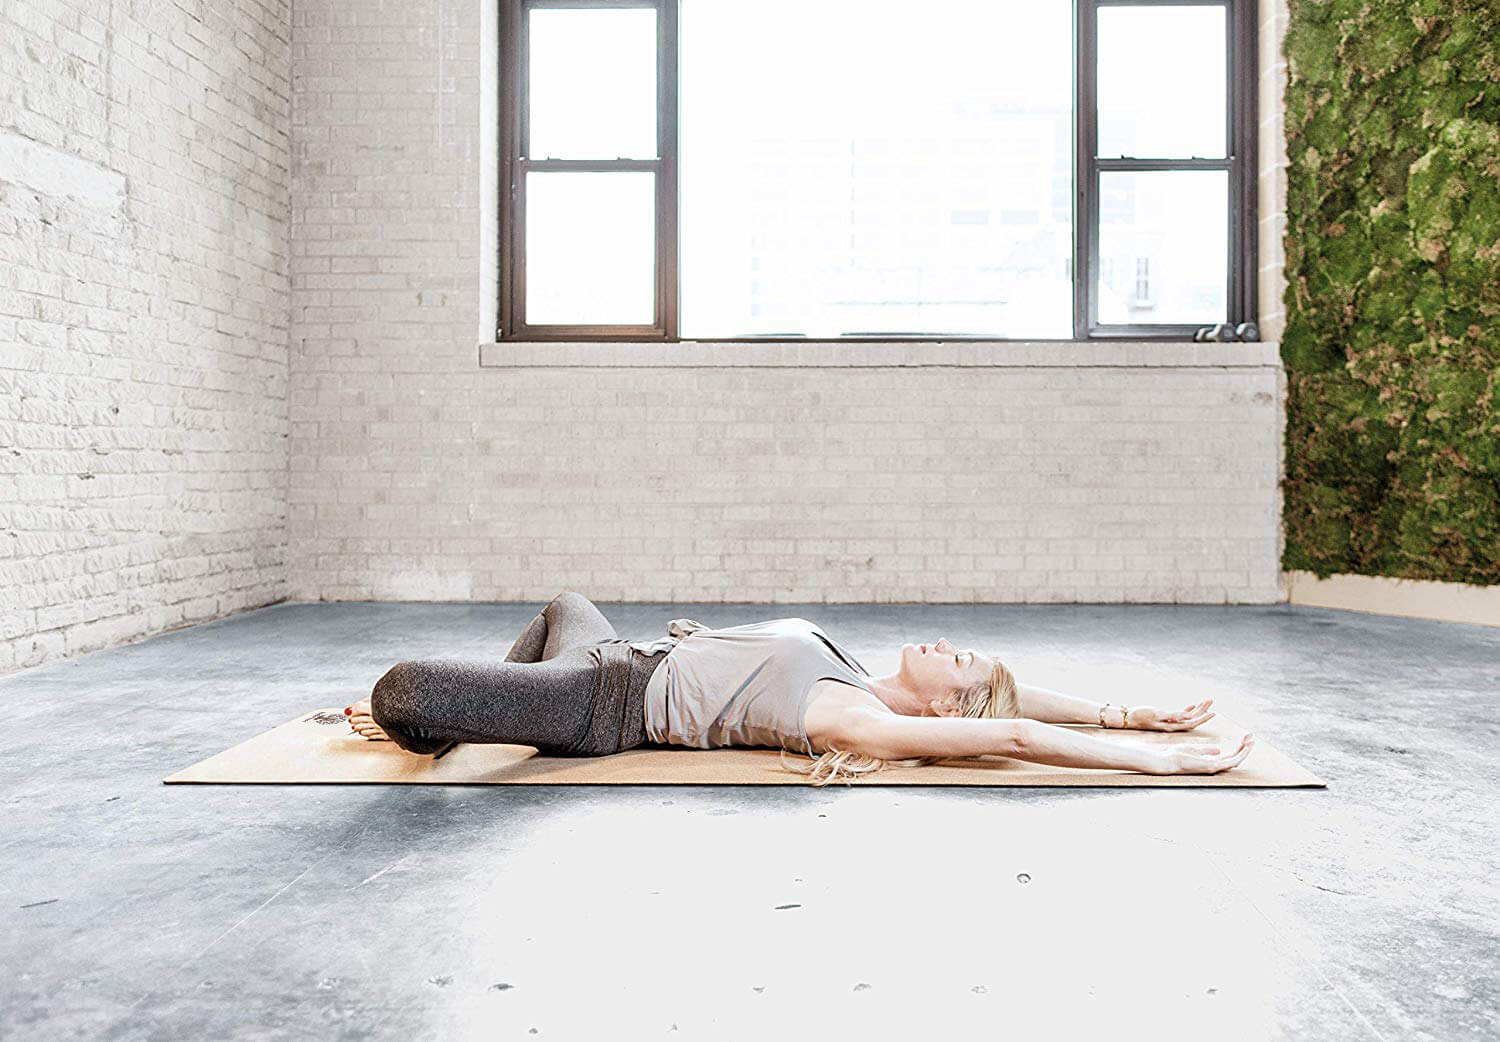 Yogini in savasana on cork yoga mat